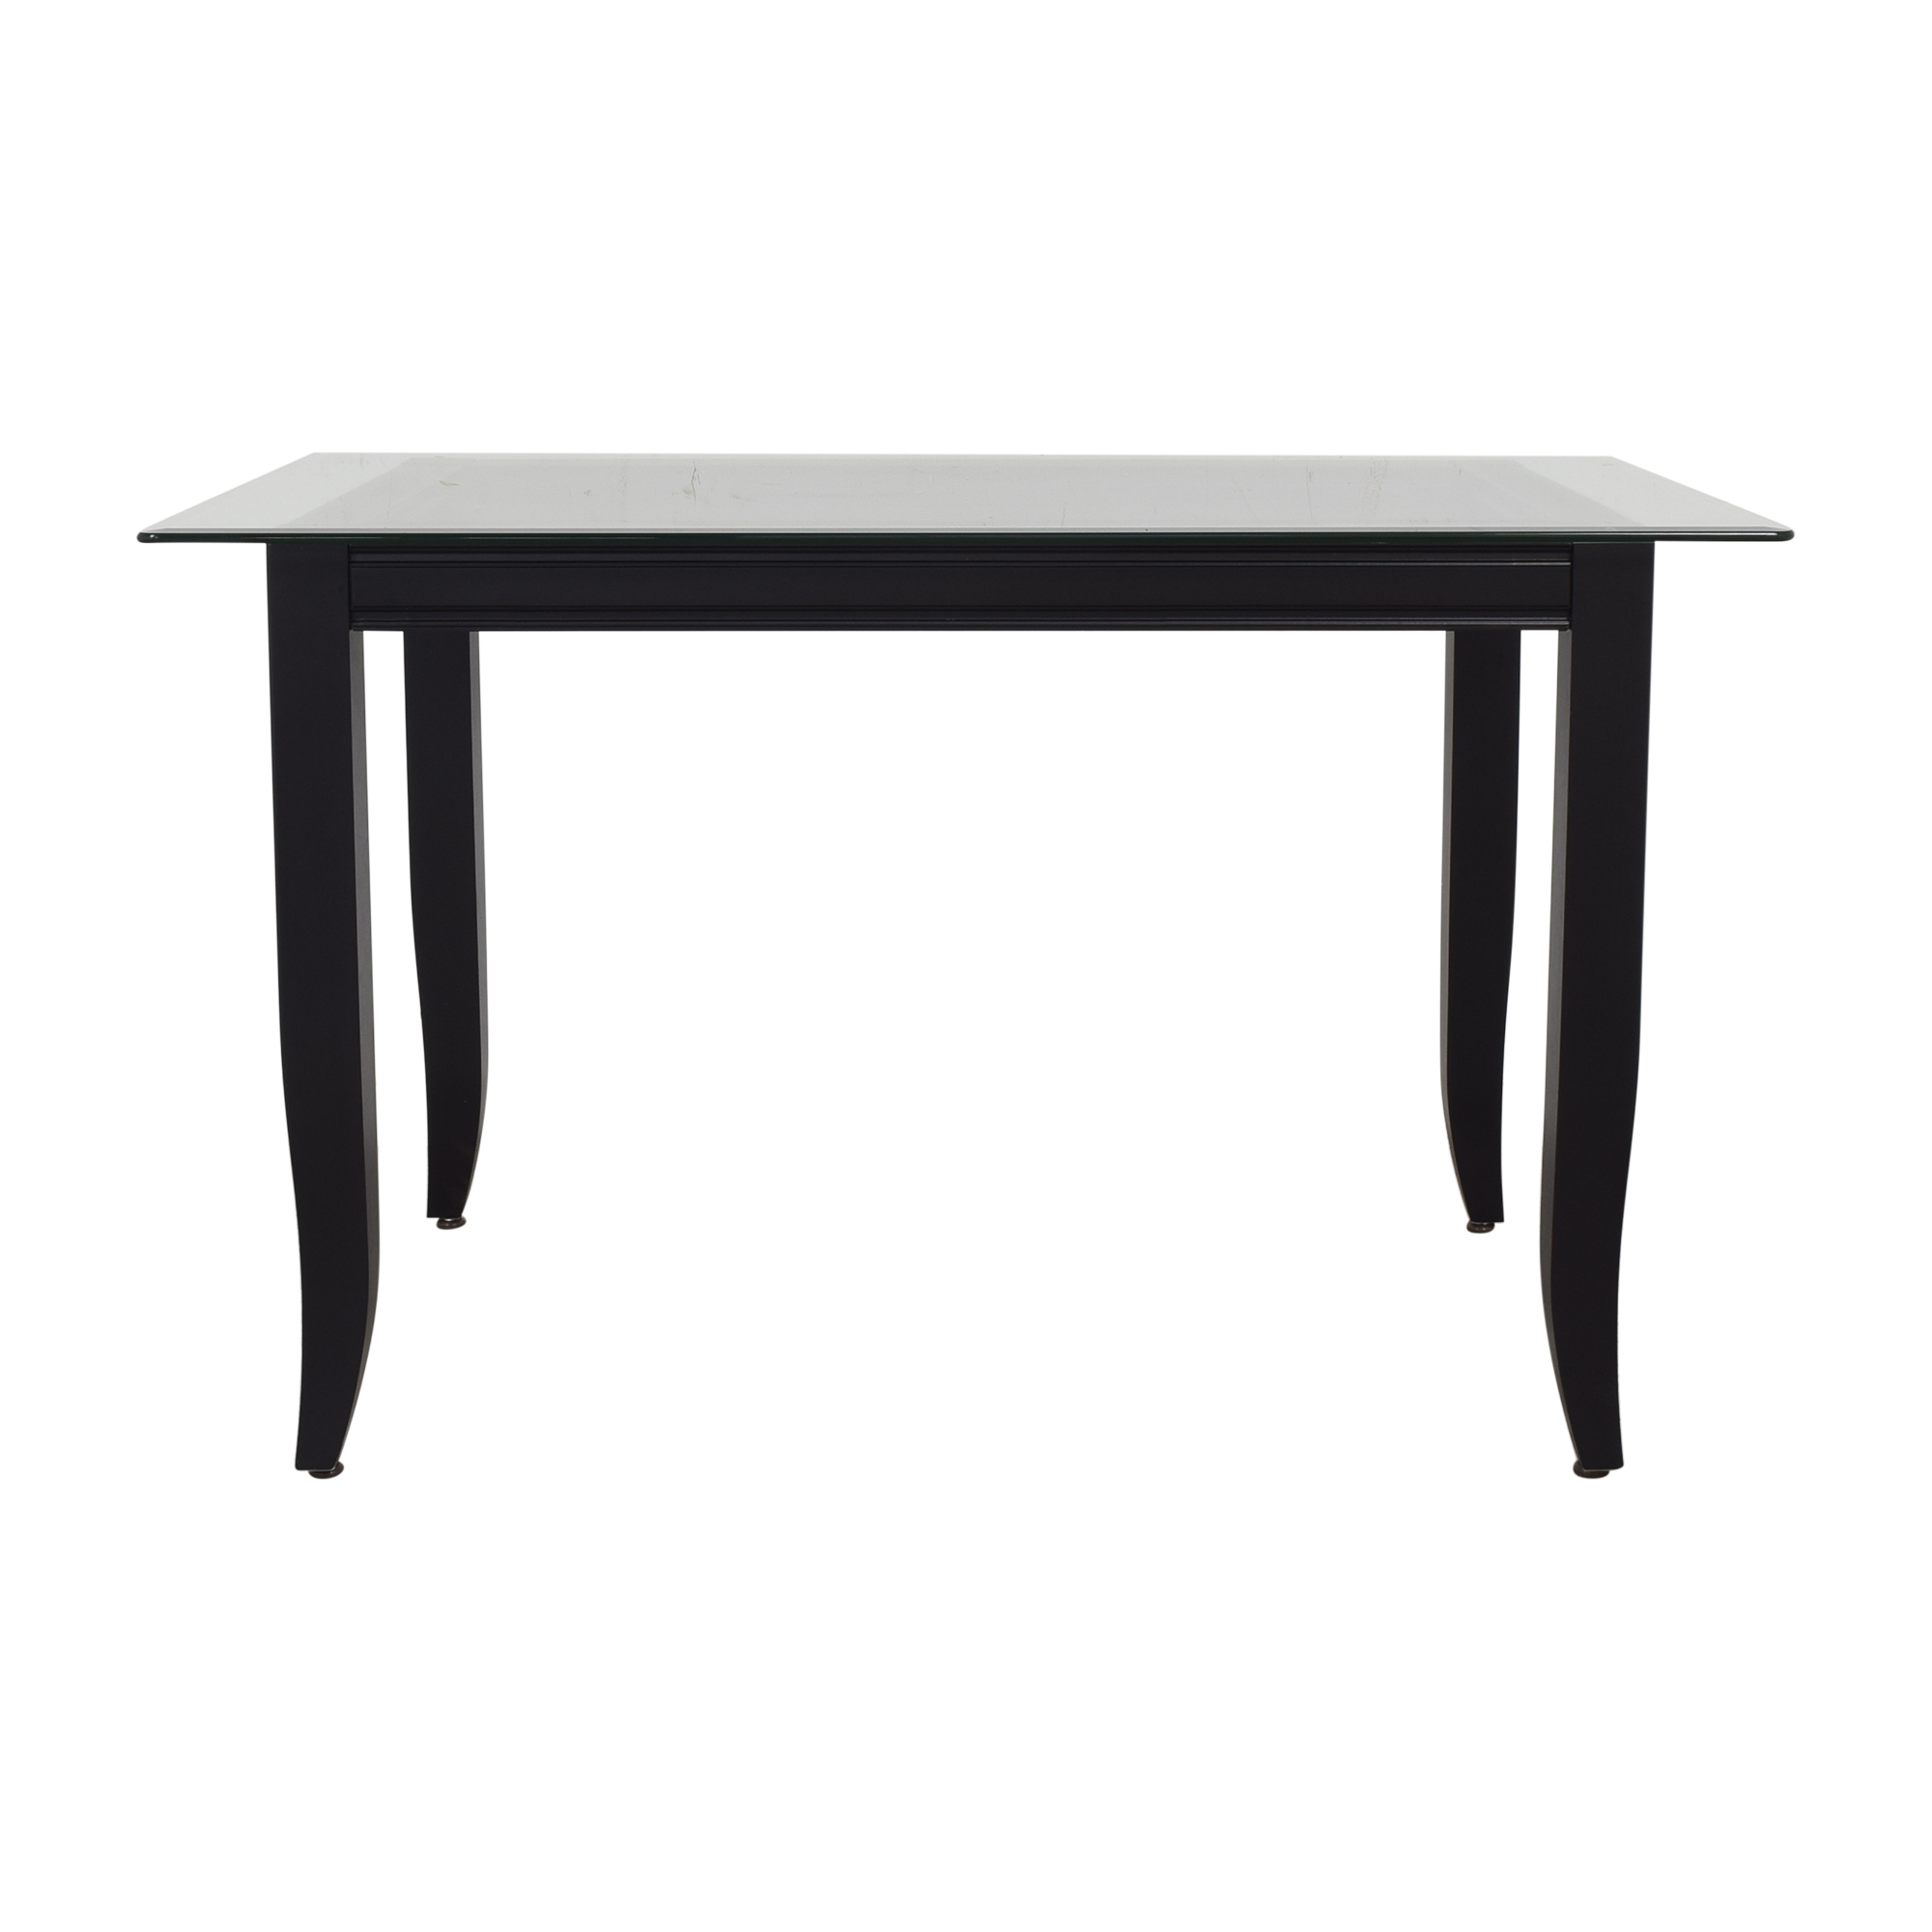 Canadel Canadel Counter Height Table price